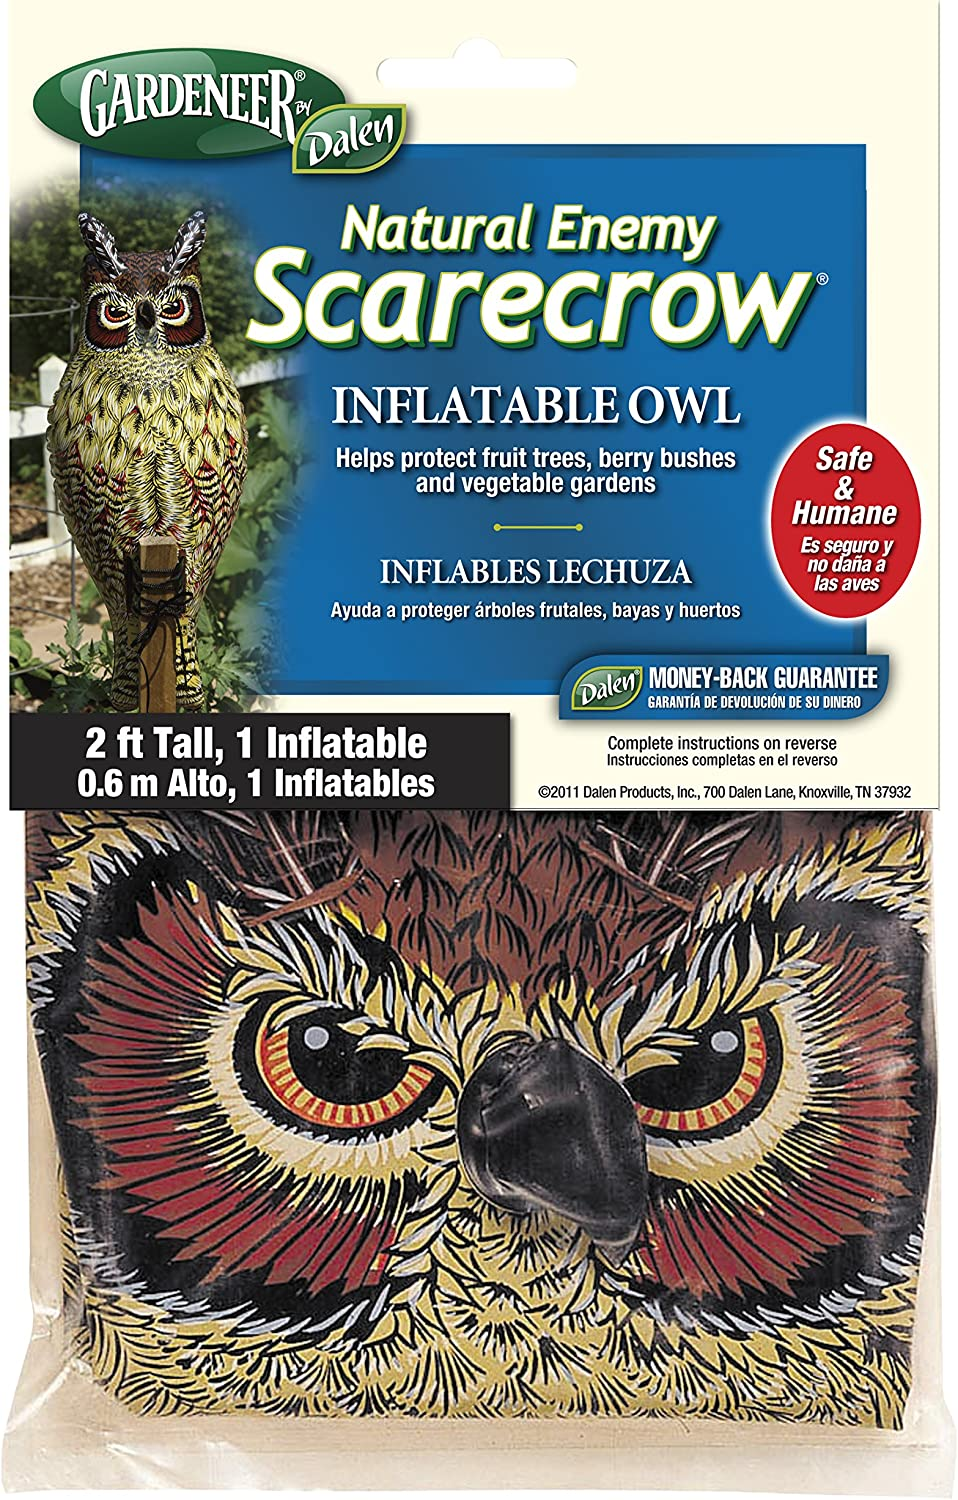 Gardeneer By Dalen Natural Enemy Scarecrow Inflatable Owl